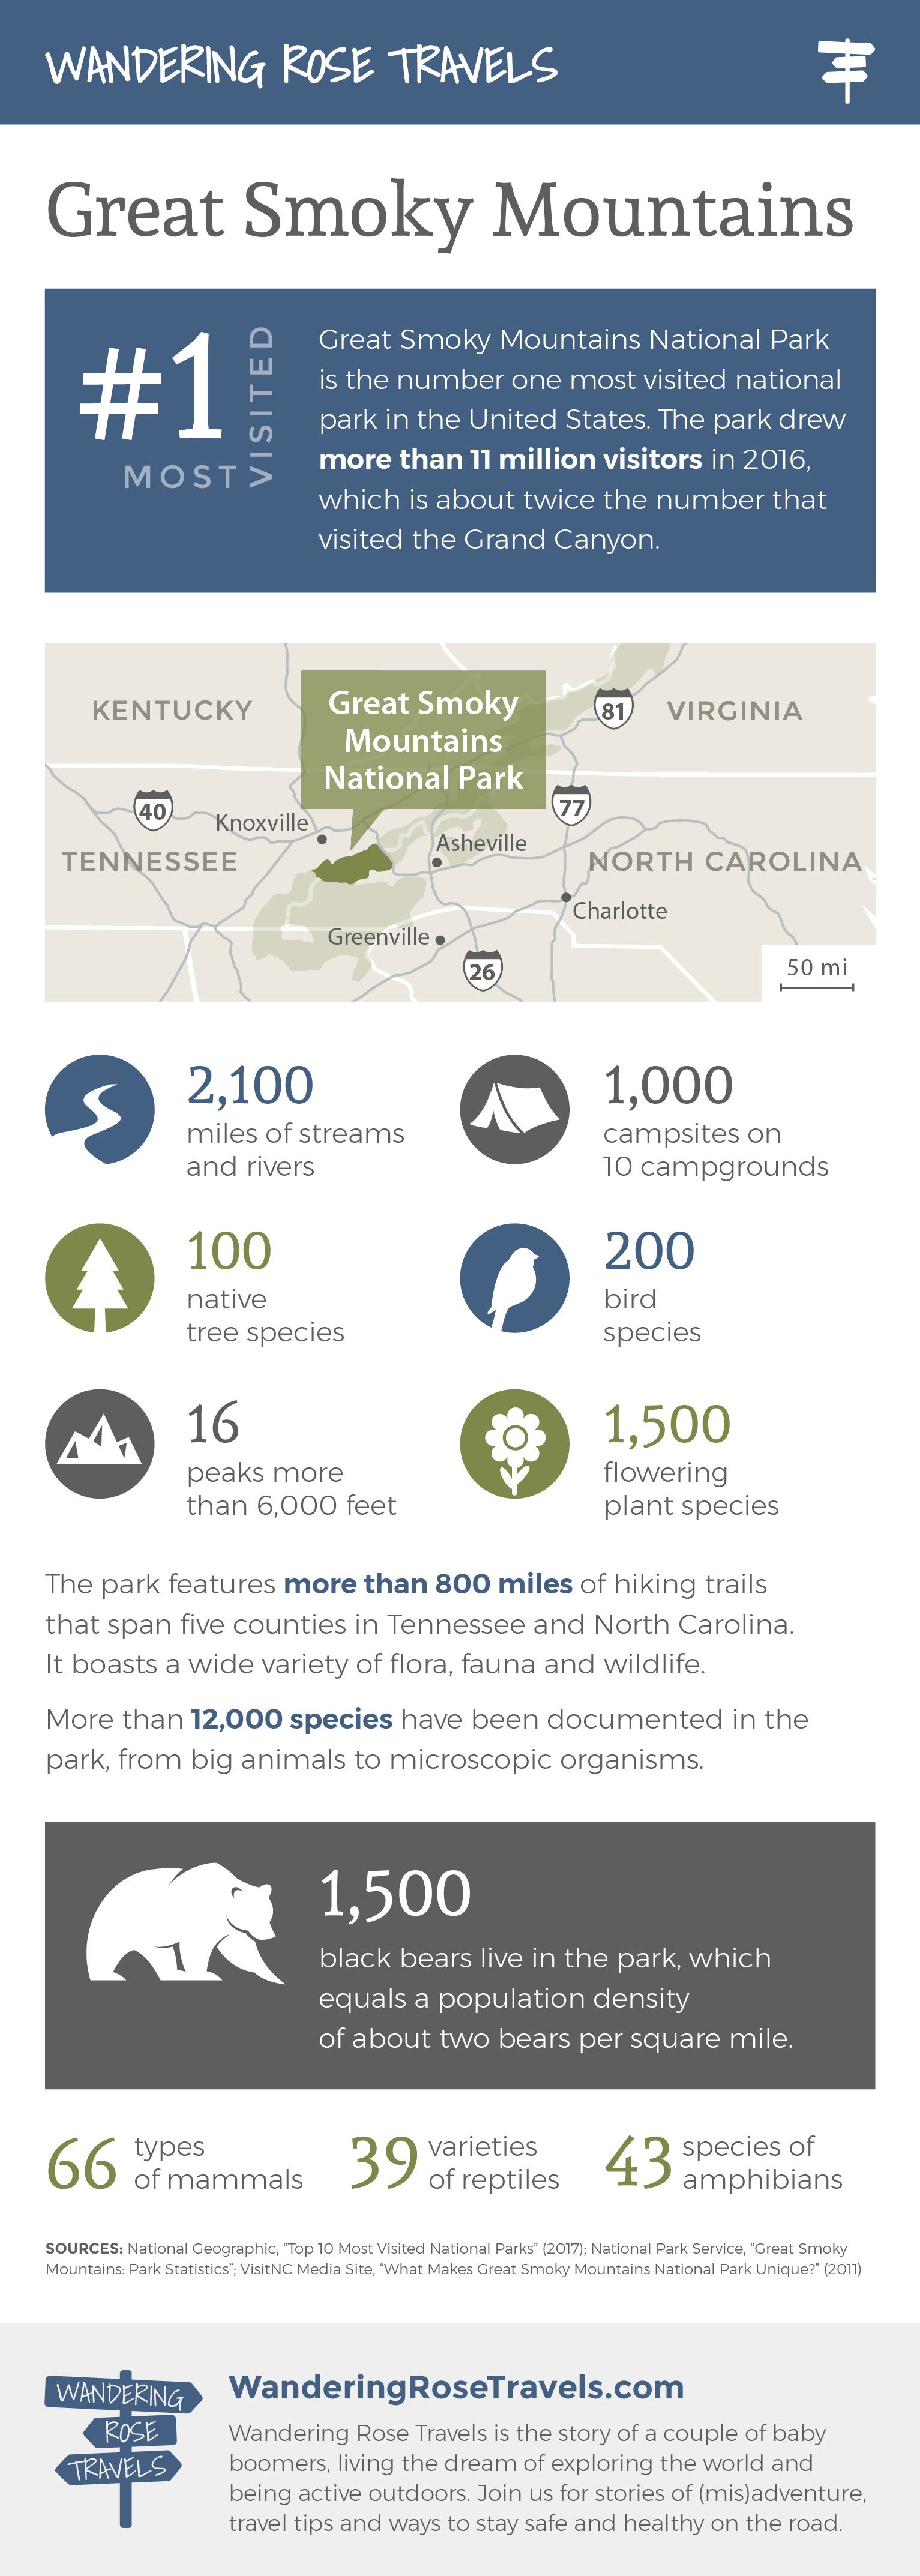 Great Smoky Mountains National Park cool facts educational infographic